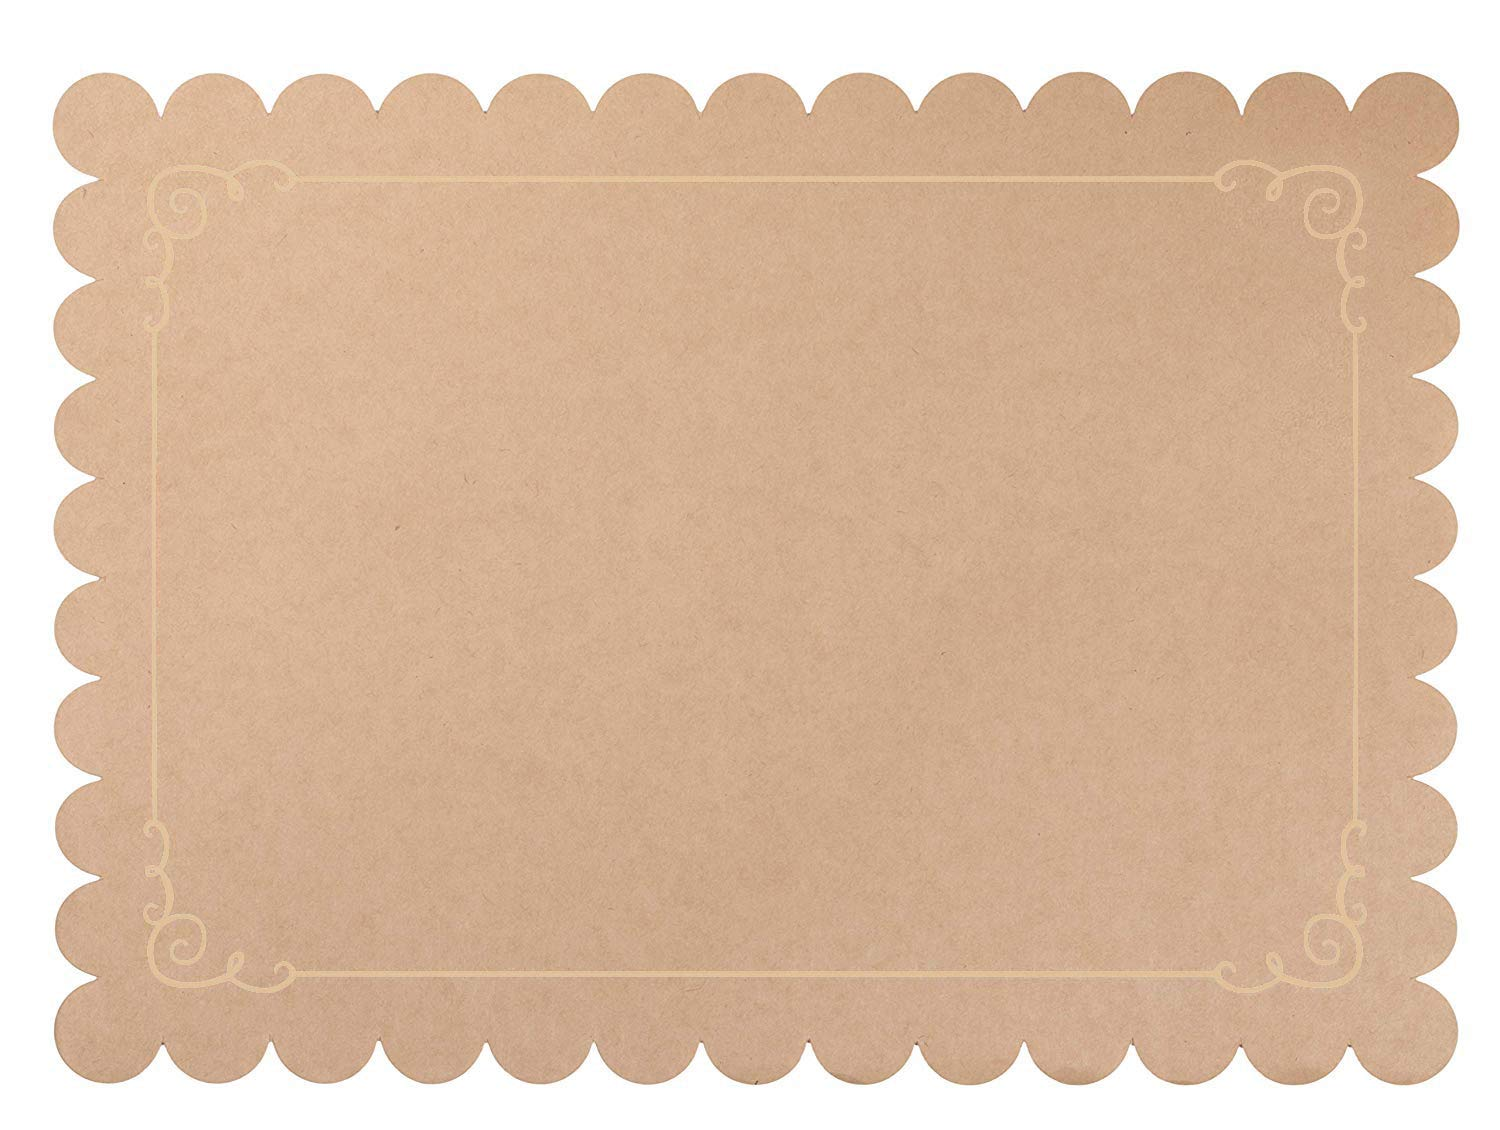 Kraft Paper Placemats - 100-Pack Disposable Placemats for Dining Table, Scalloped Edges and Beige Border, Wedding, Anniversary, Birthday Party Supplies, Table Decoration, Brown, 14 x 10 Inches by Juvale